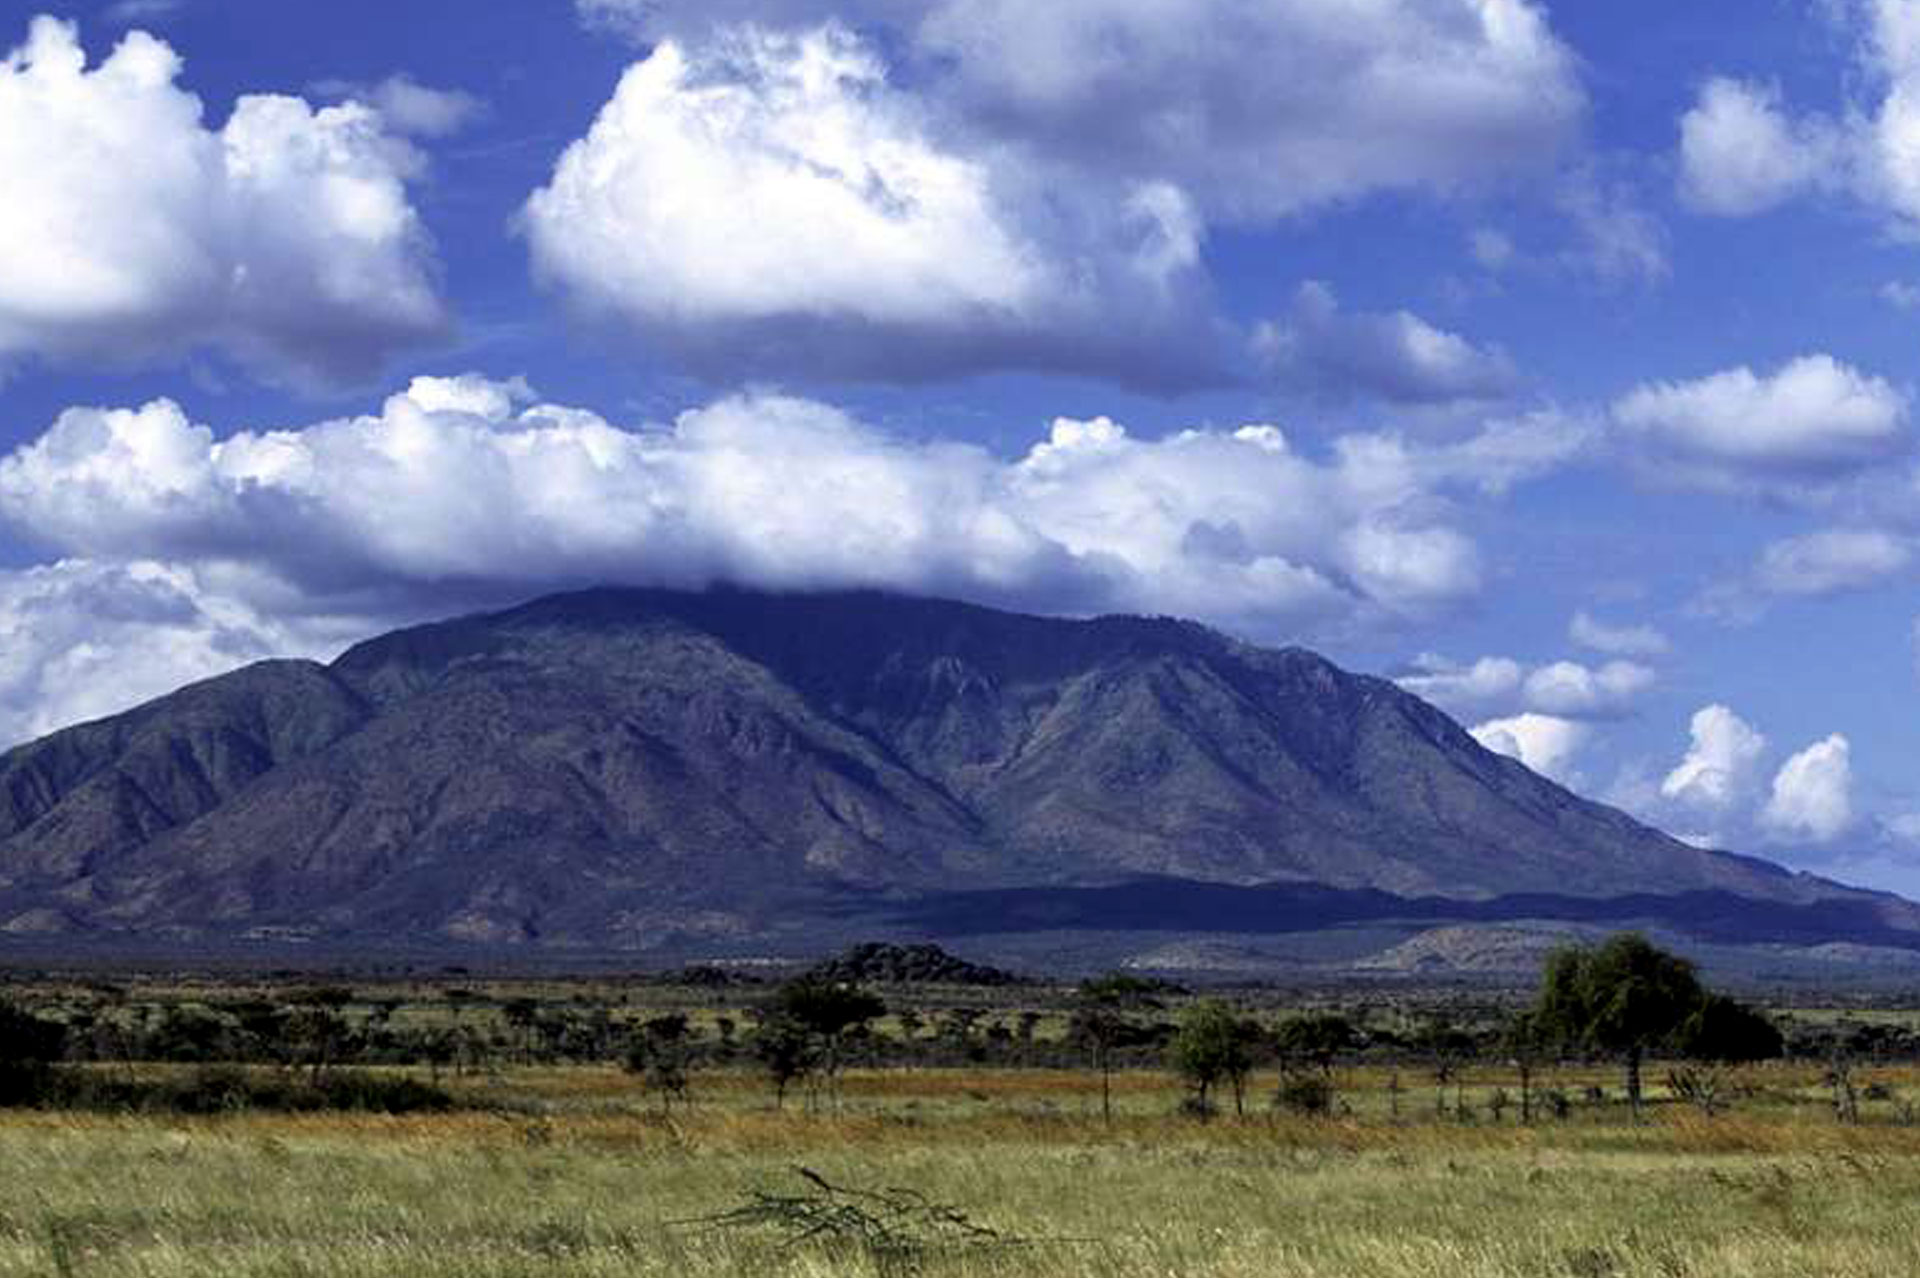 Diani_travel_center_National_Parks_in_Kenya_Mount_Elgon_National_park_image_2jpg